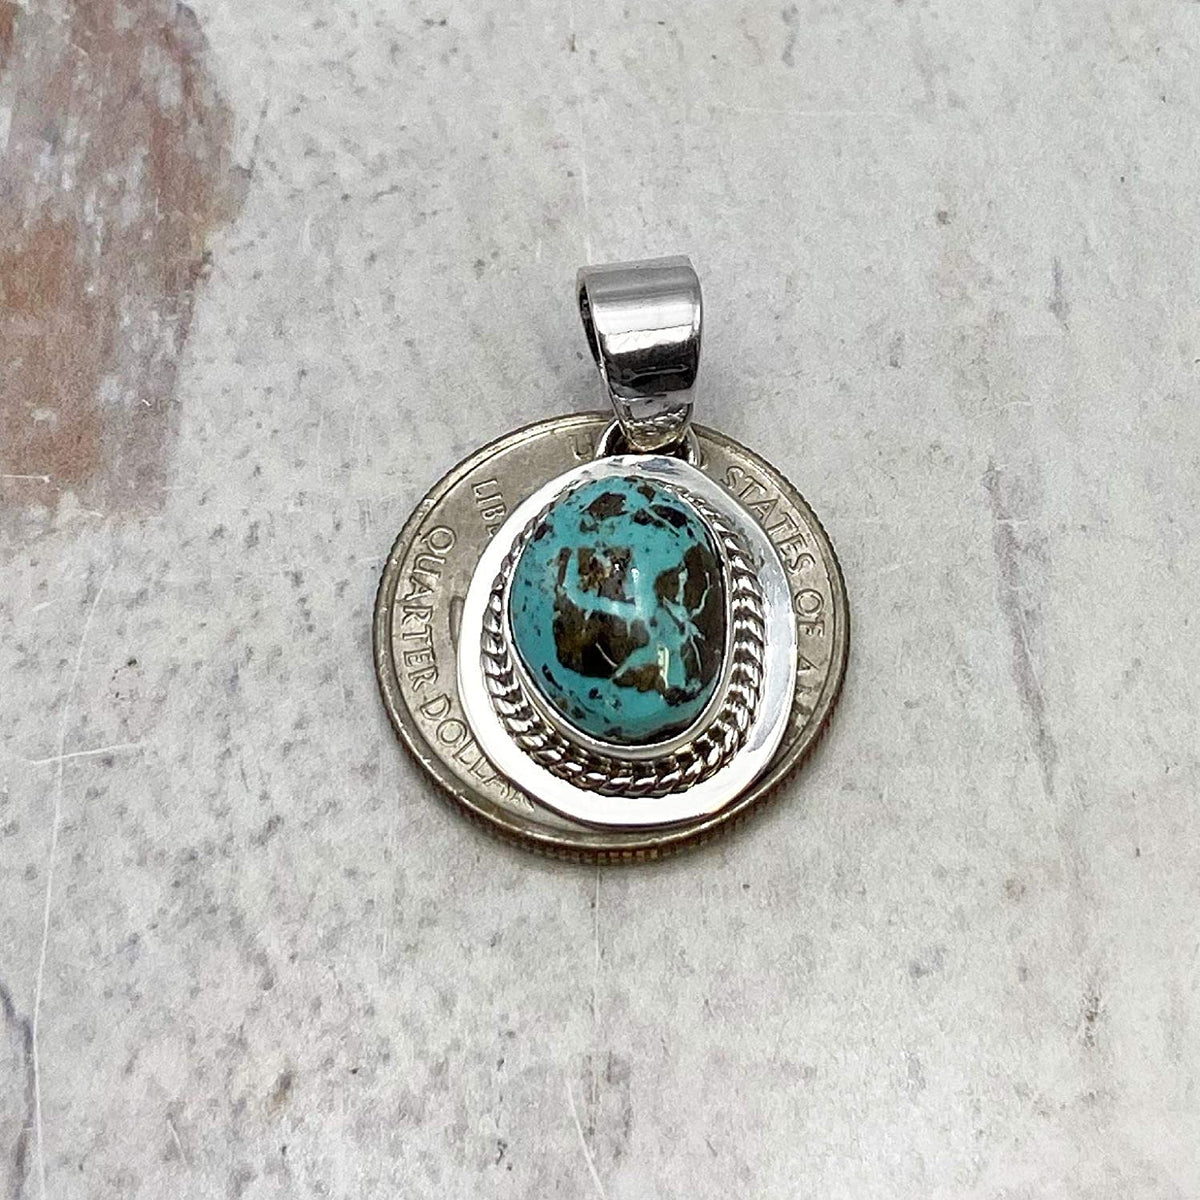 Genuine Sierra Nevada Turquoise Necklace Set, Pendant with Chain, Navajo Native American USA Handmade, 925 Sterling Silver, Artist Signed, Natural Stone, Nickel Free